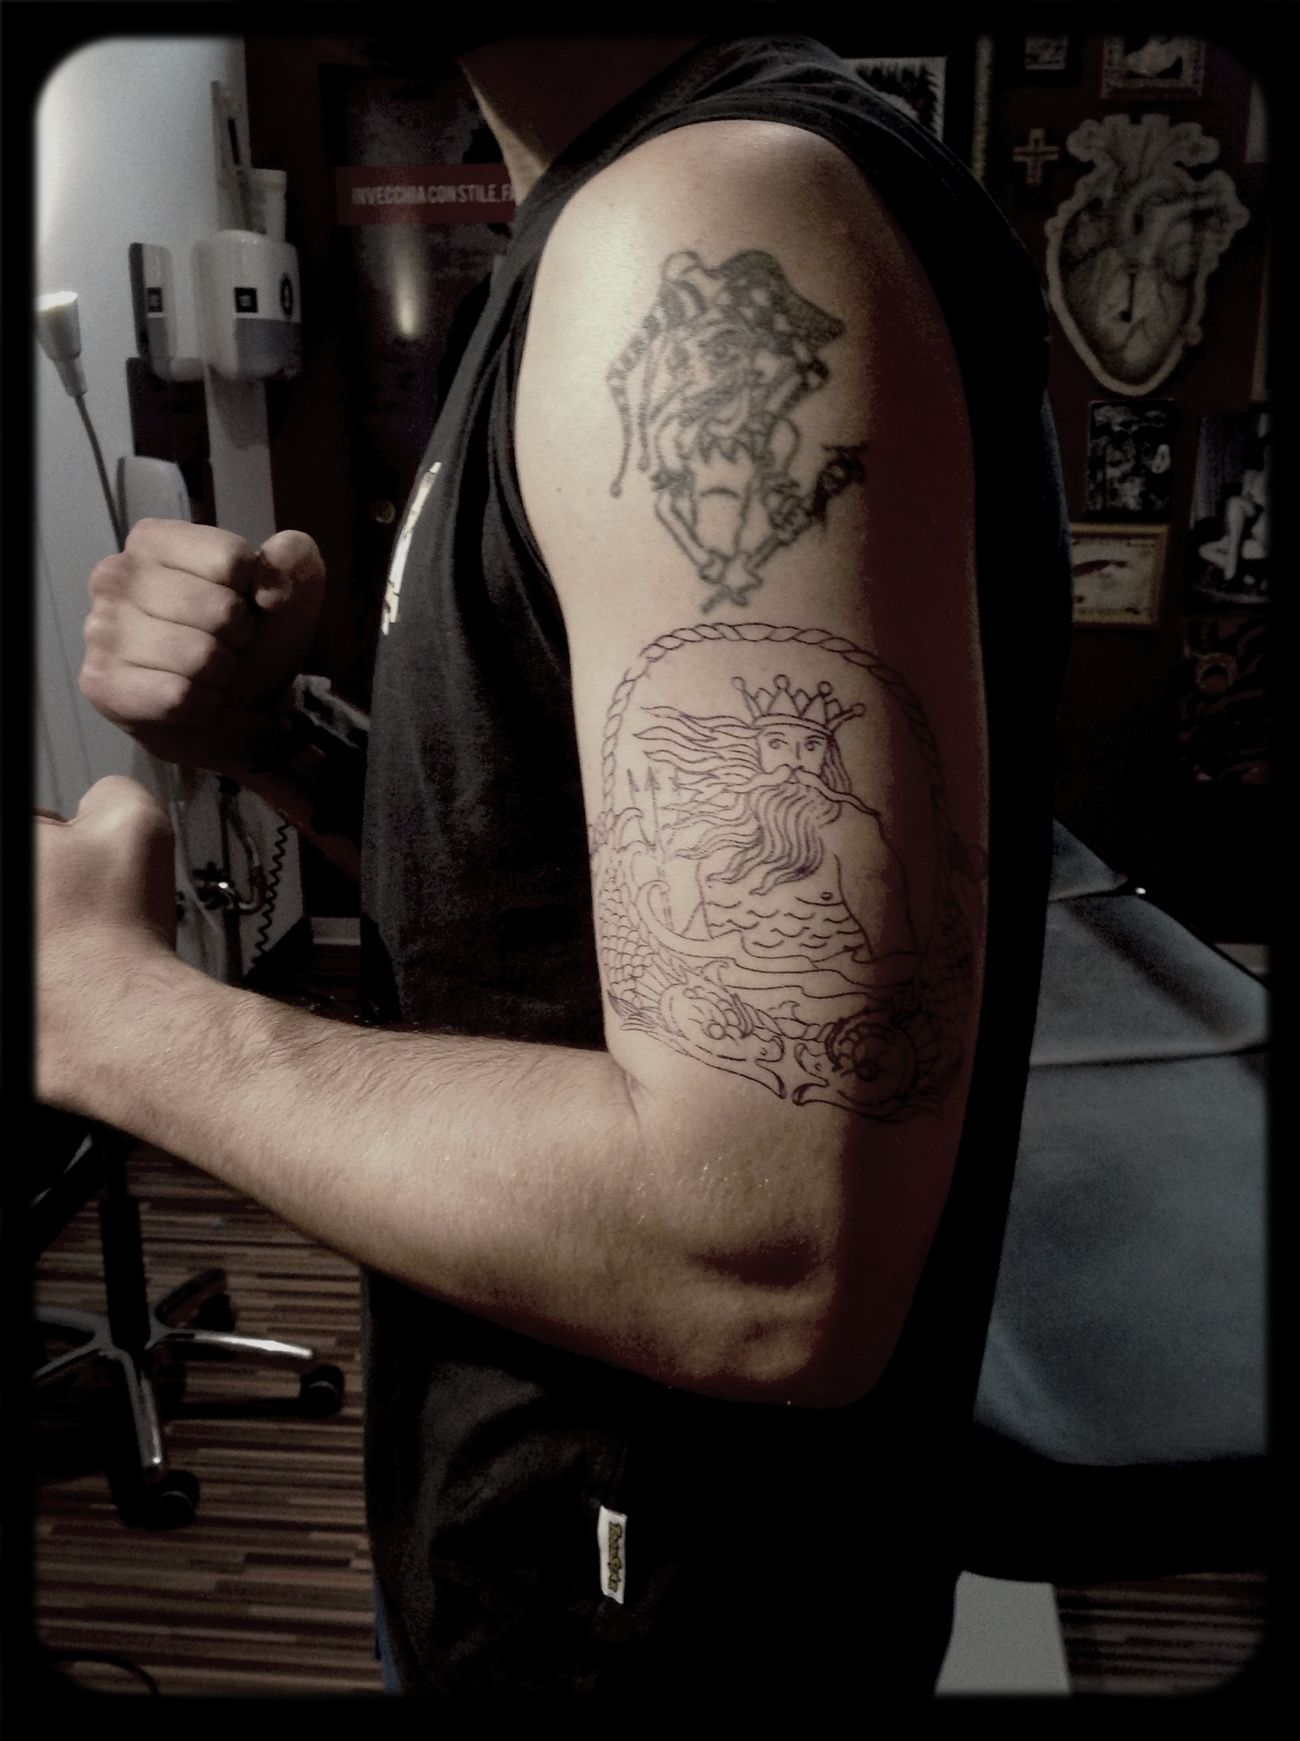 Poseidon Tatoo Tattoo No Pain, No Gain Getting Inked Ouch!